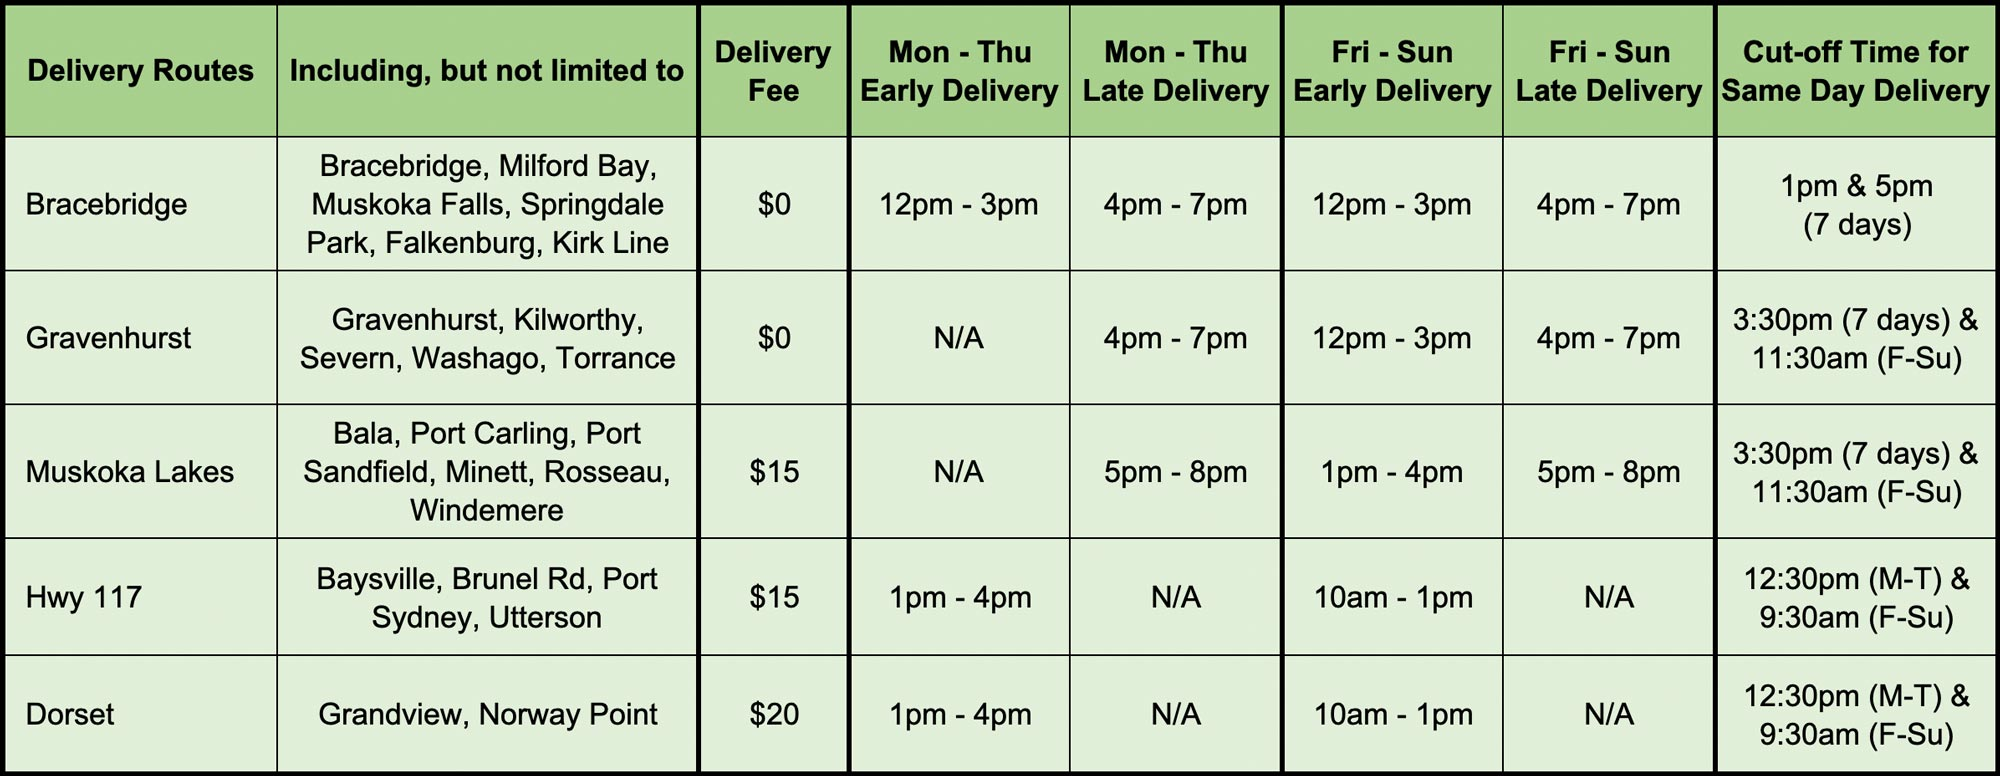 Bud Heaven Muskoka Cannabis Delivery Schedule